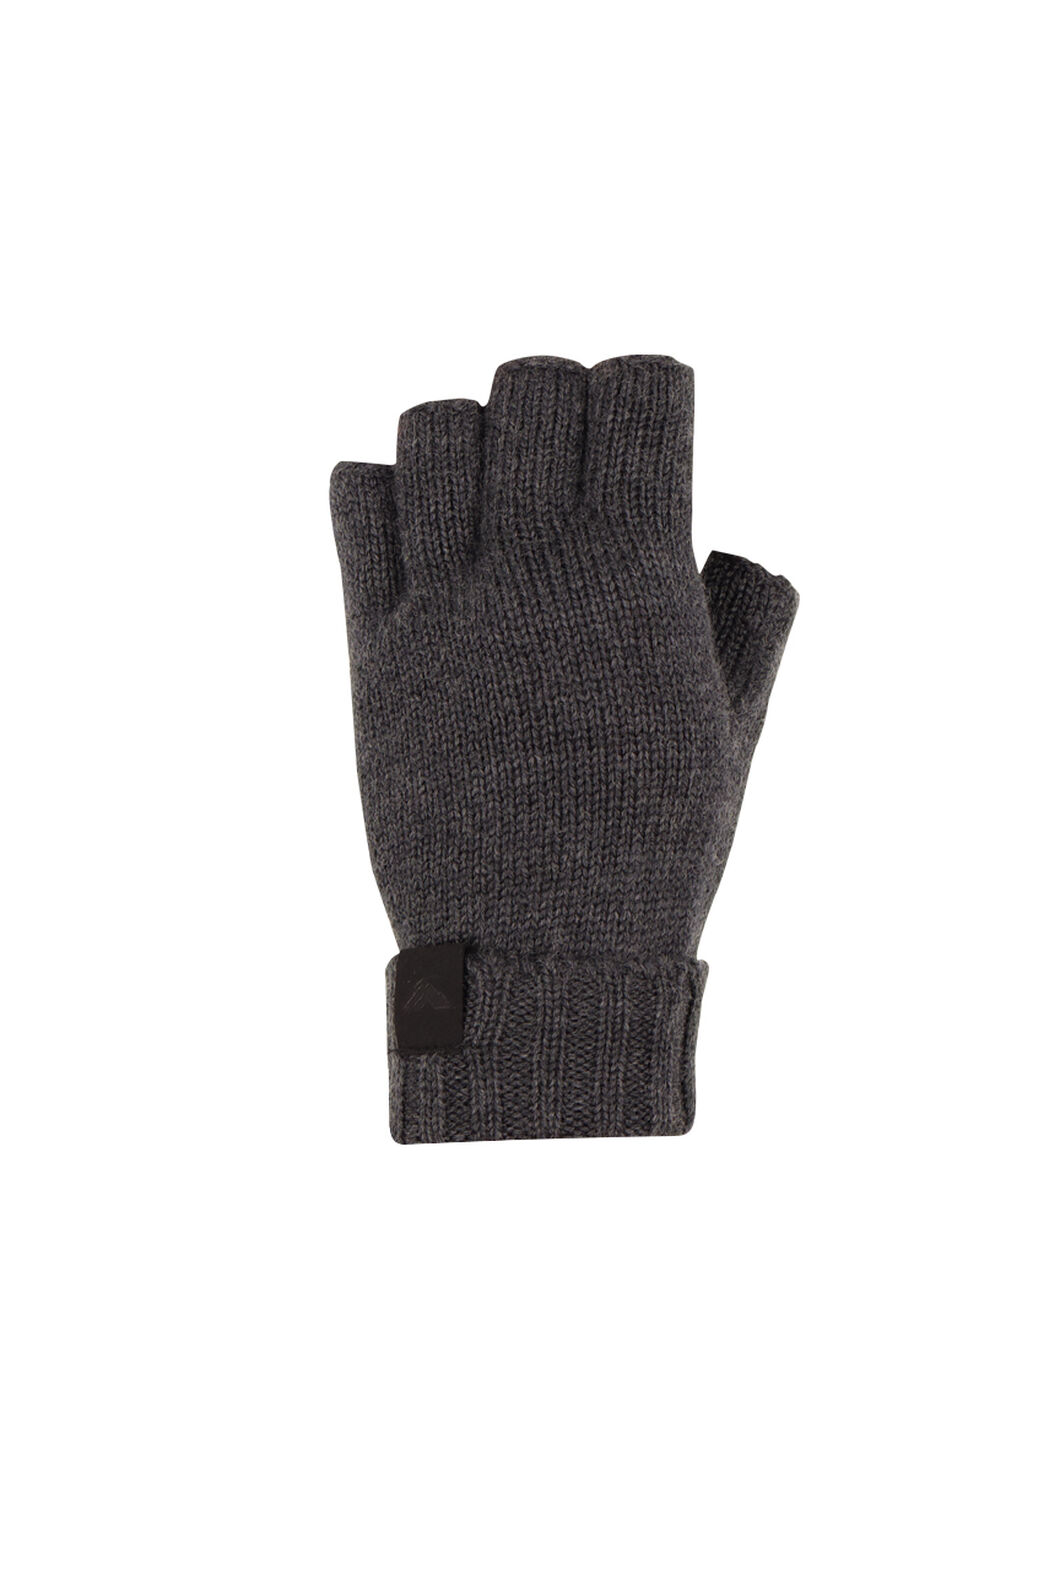 Macpac Merino Fingerless Gloves, Charcoal Melange, hi-res